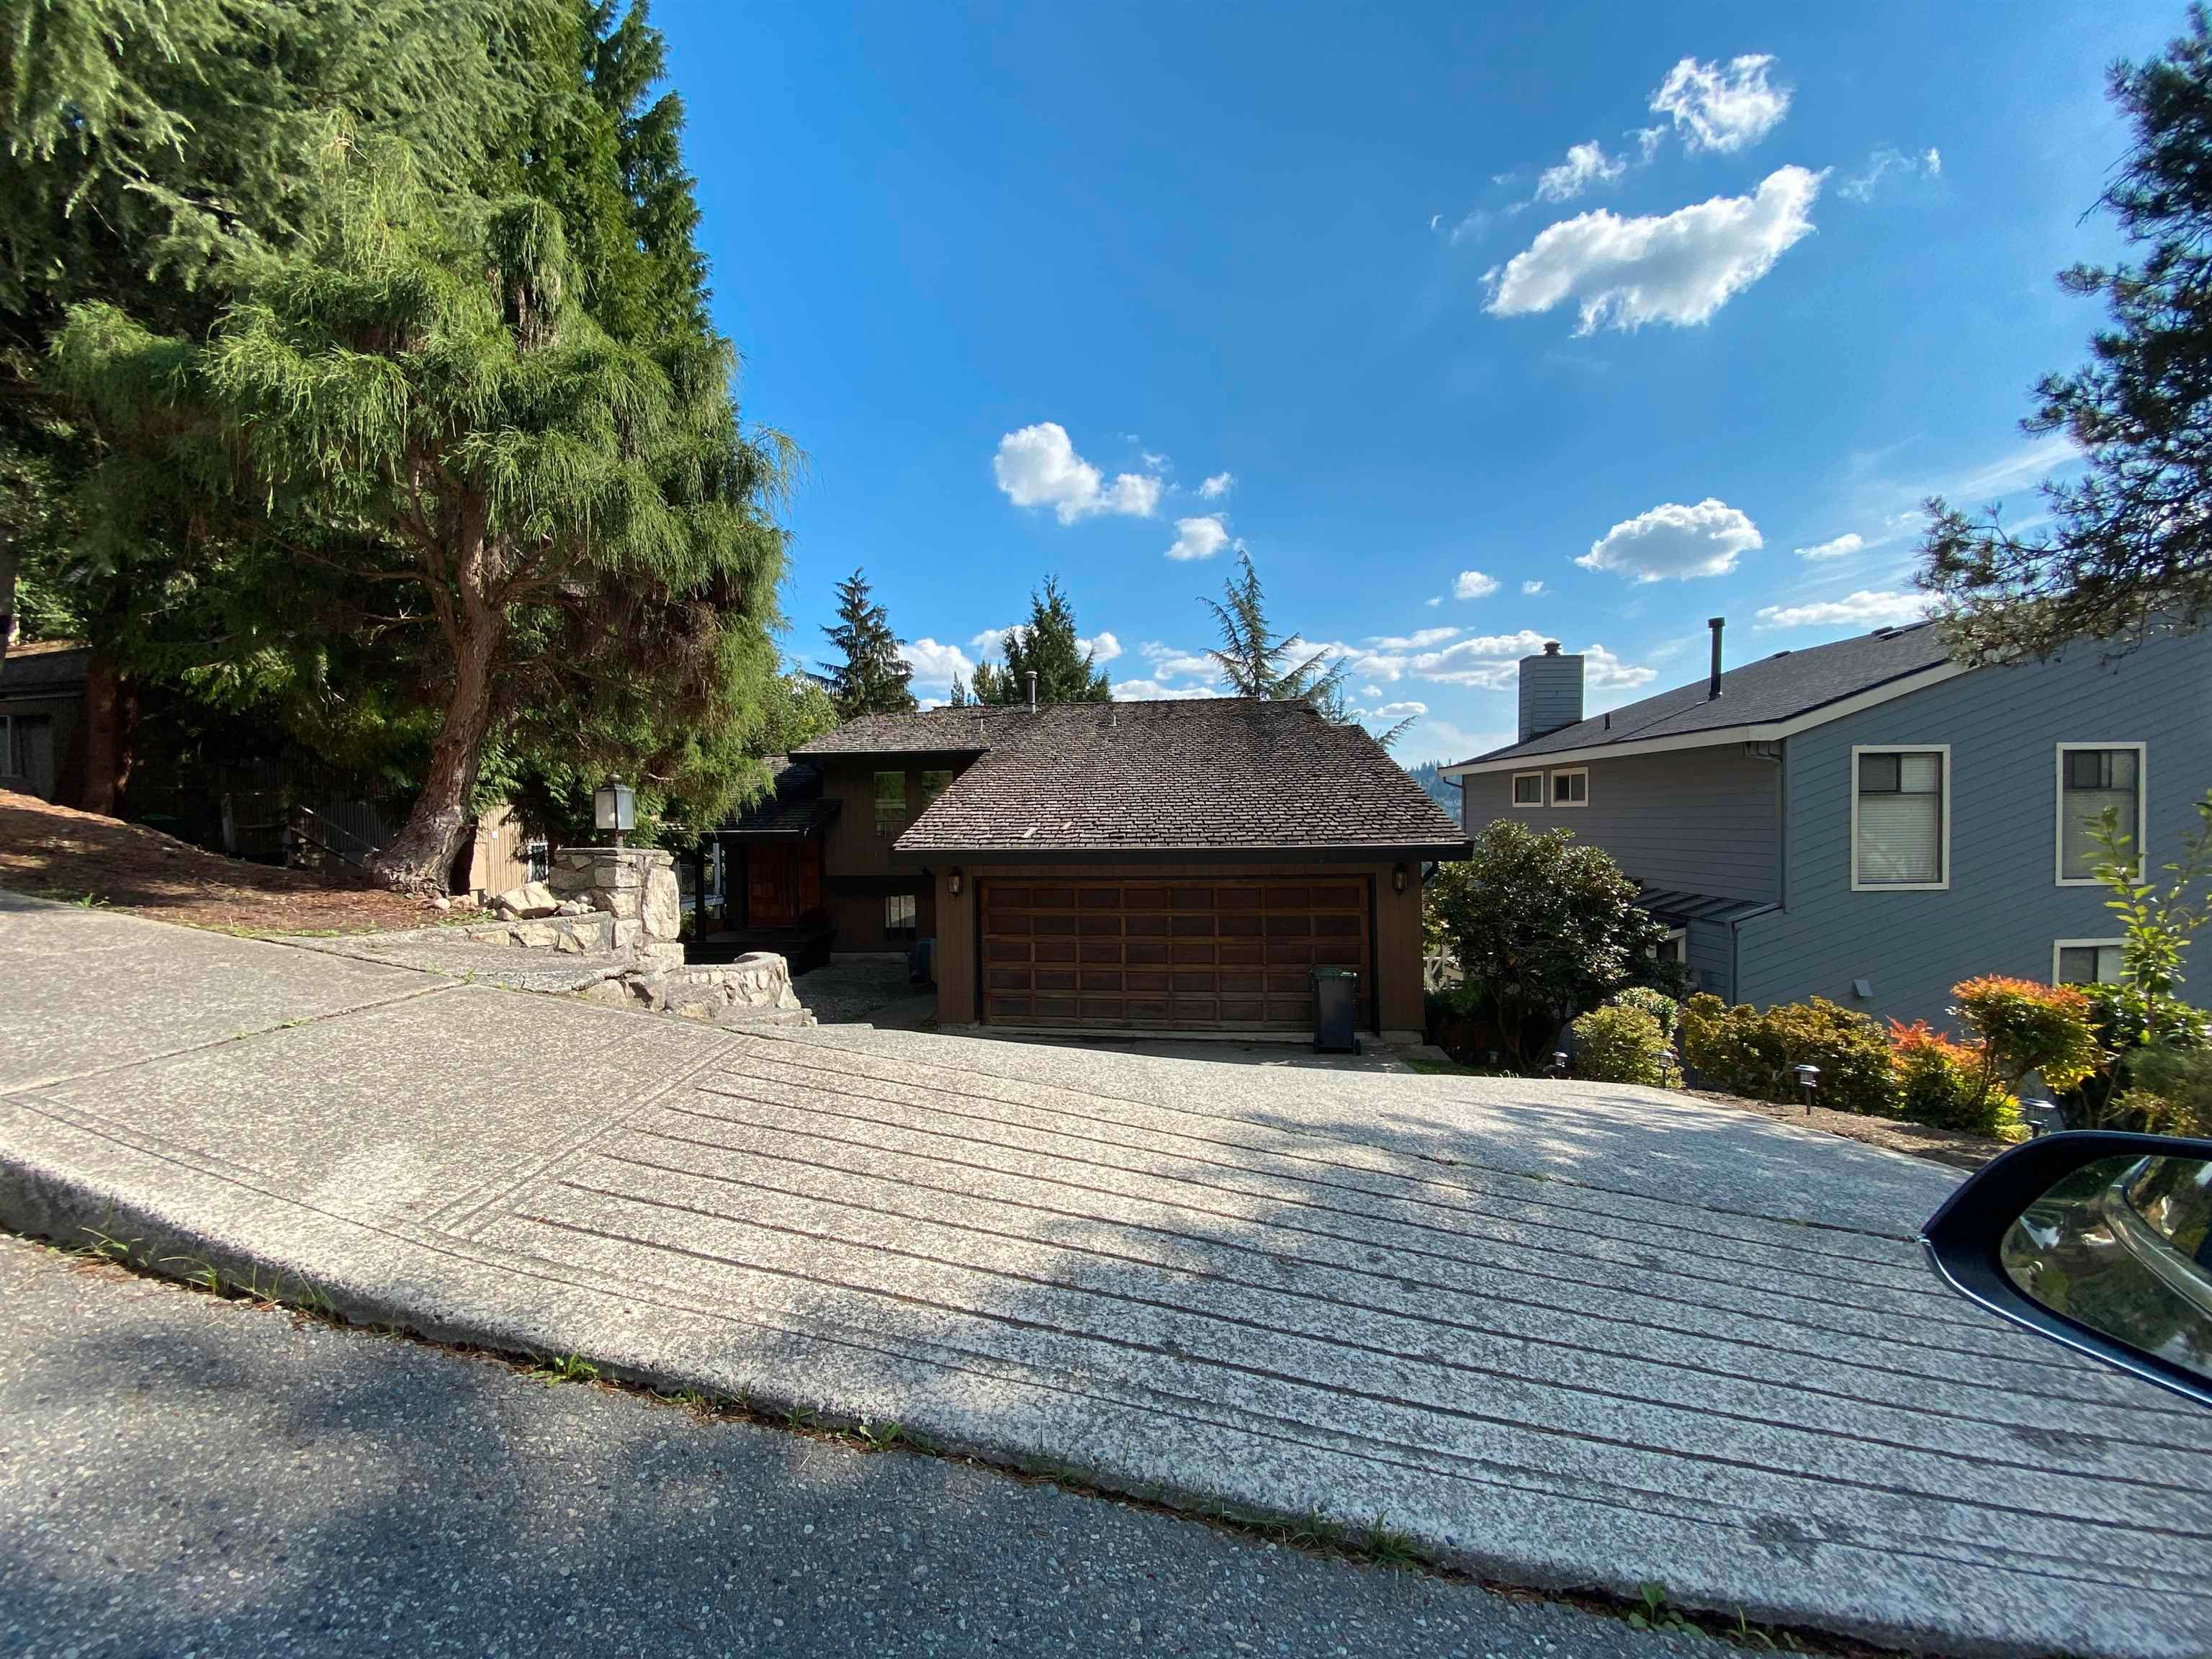 Main Photo: 1305 CHARTER HILL DRIVE in Coquitlam: Upper Eagle Ridge House for sale : MLS®# R2616938